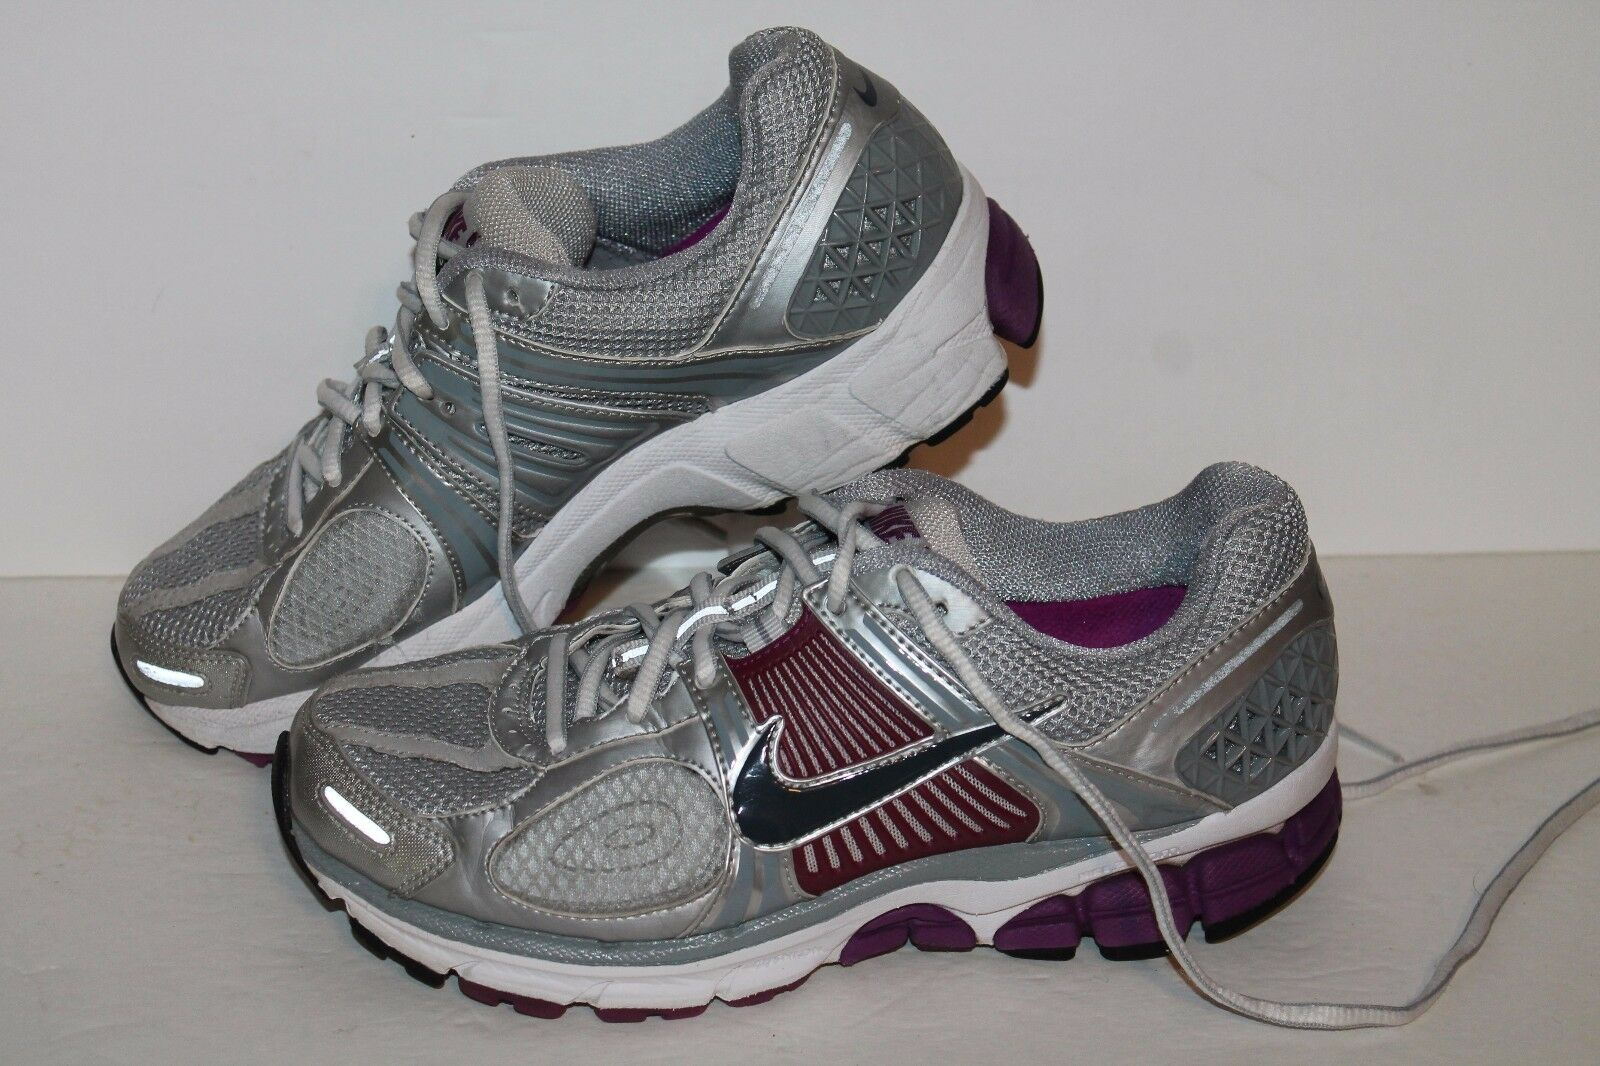 Nike Zm Vomero 5+ Running Shoes, Silver/Ppl/Grey, Womens US 6